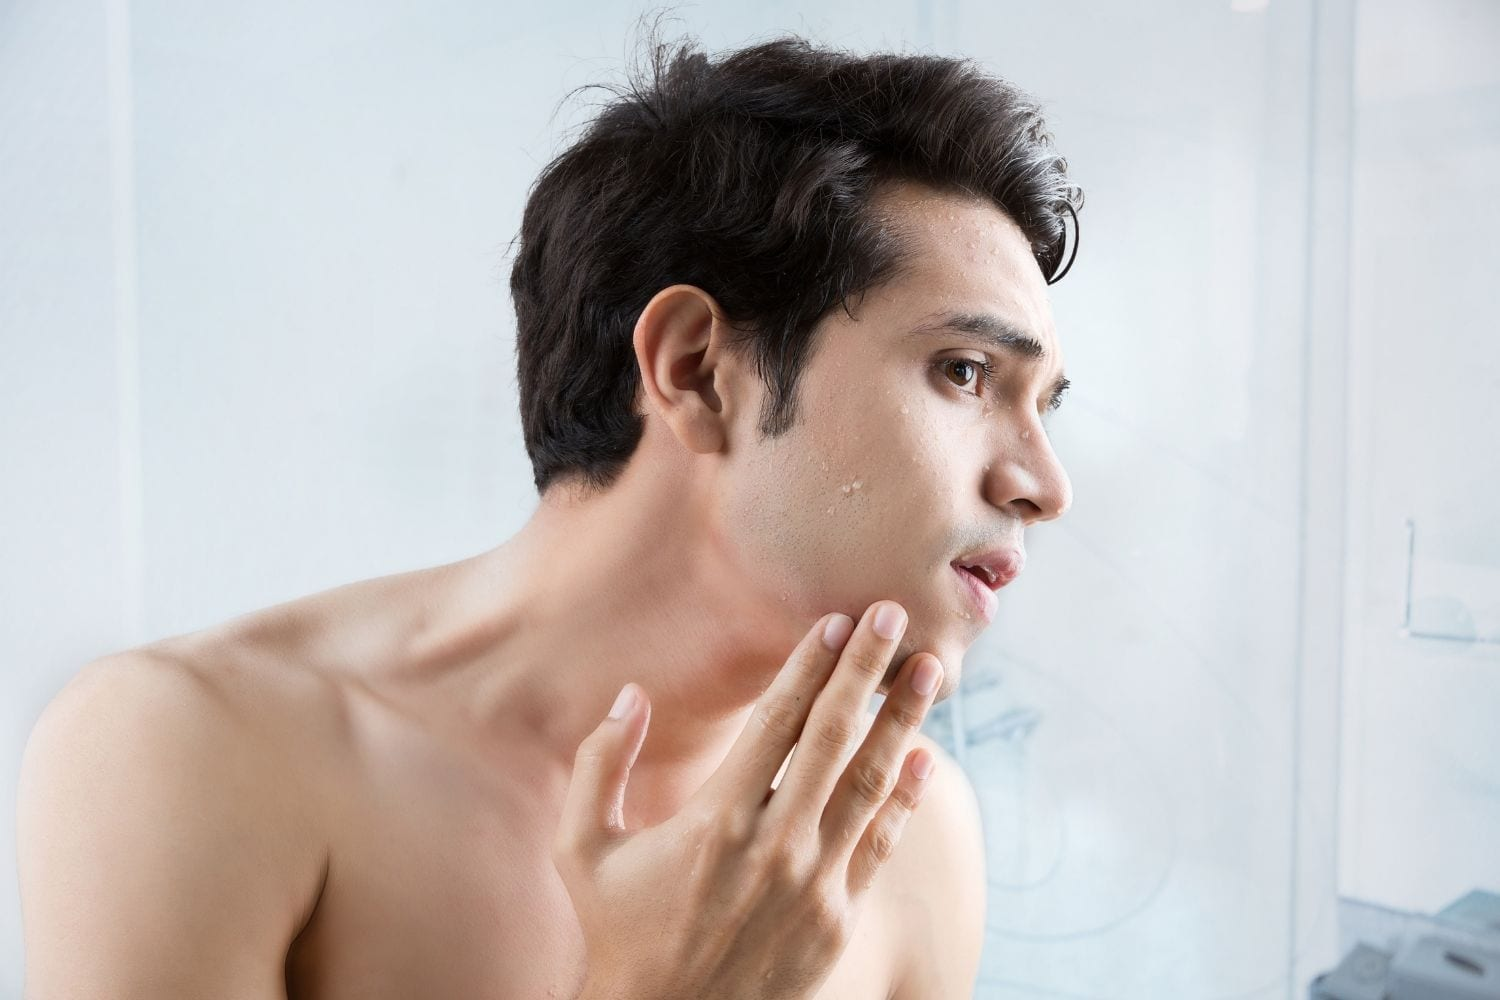 man checking for dry skin after shaving